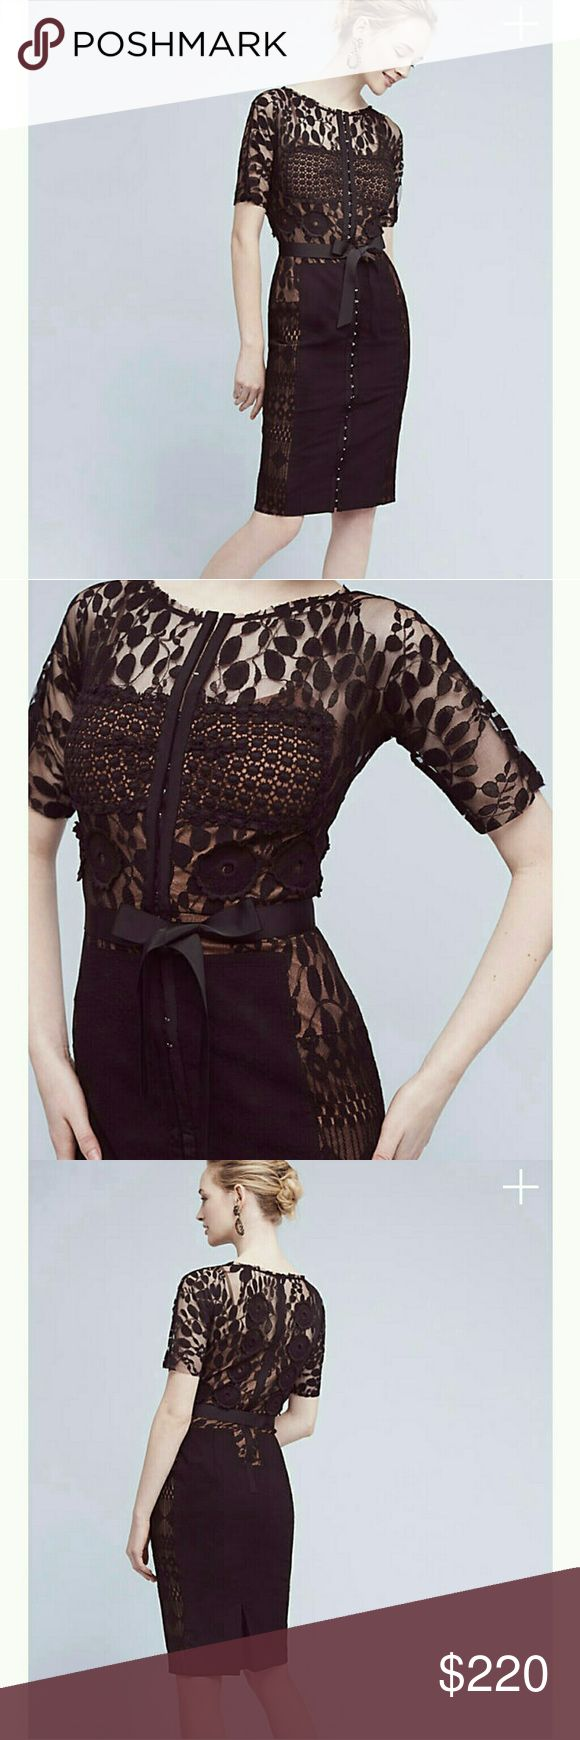 Anthropologie  Byron  Lars Carrisina Sheath A San Francisco native who earned insta-praise and was lauded as Women's Wear Daily's Rookie of the Year for his first collection, Byron Lars specializes in expertly structured, sensuously cut silhouettes. We're so smitten with this pencil dress from his Anthropologie-exclusive Beguile line; the lace and appliqued flowers make it a perfect piece for every occasion. Add strappy, sparkly sandals for an event-ready look. NWT, still regular price…